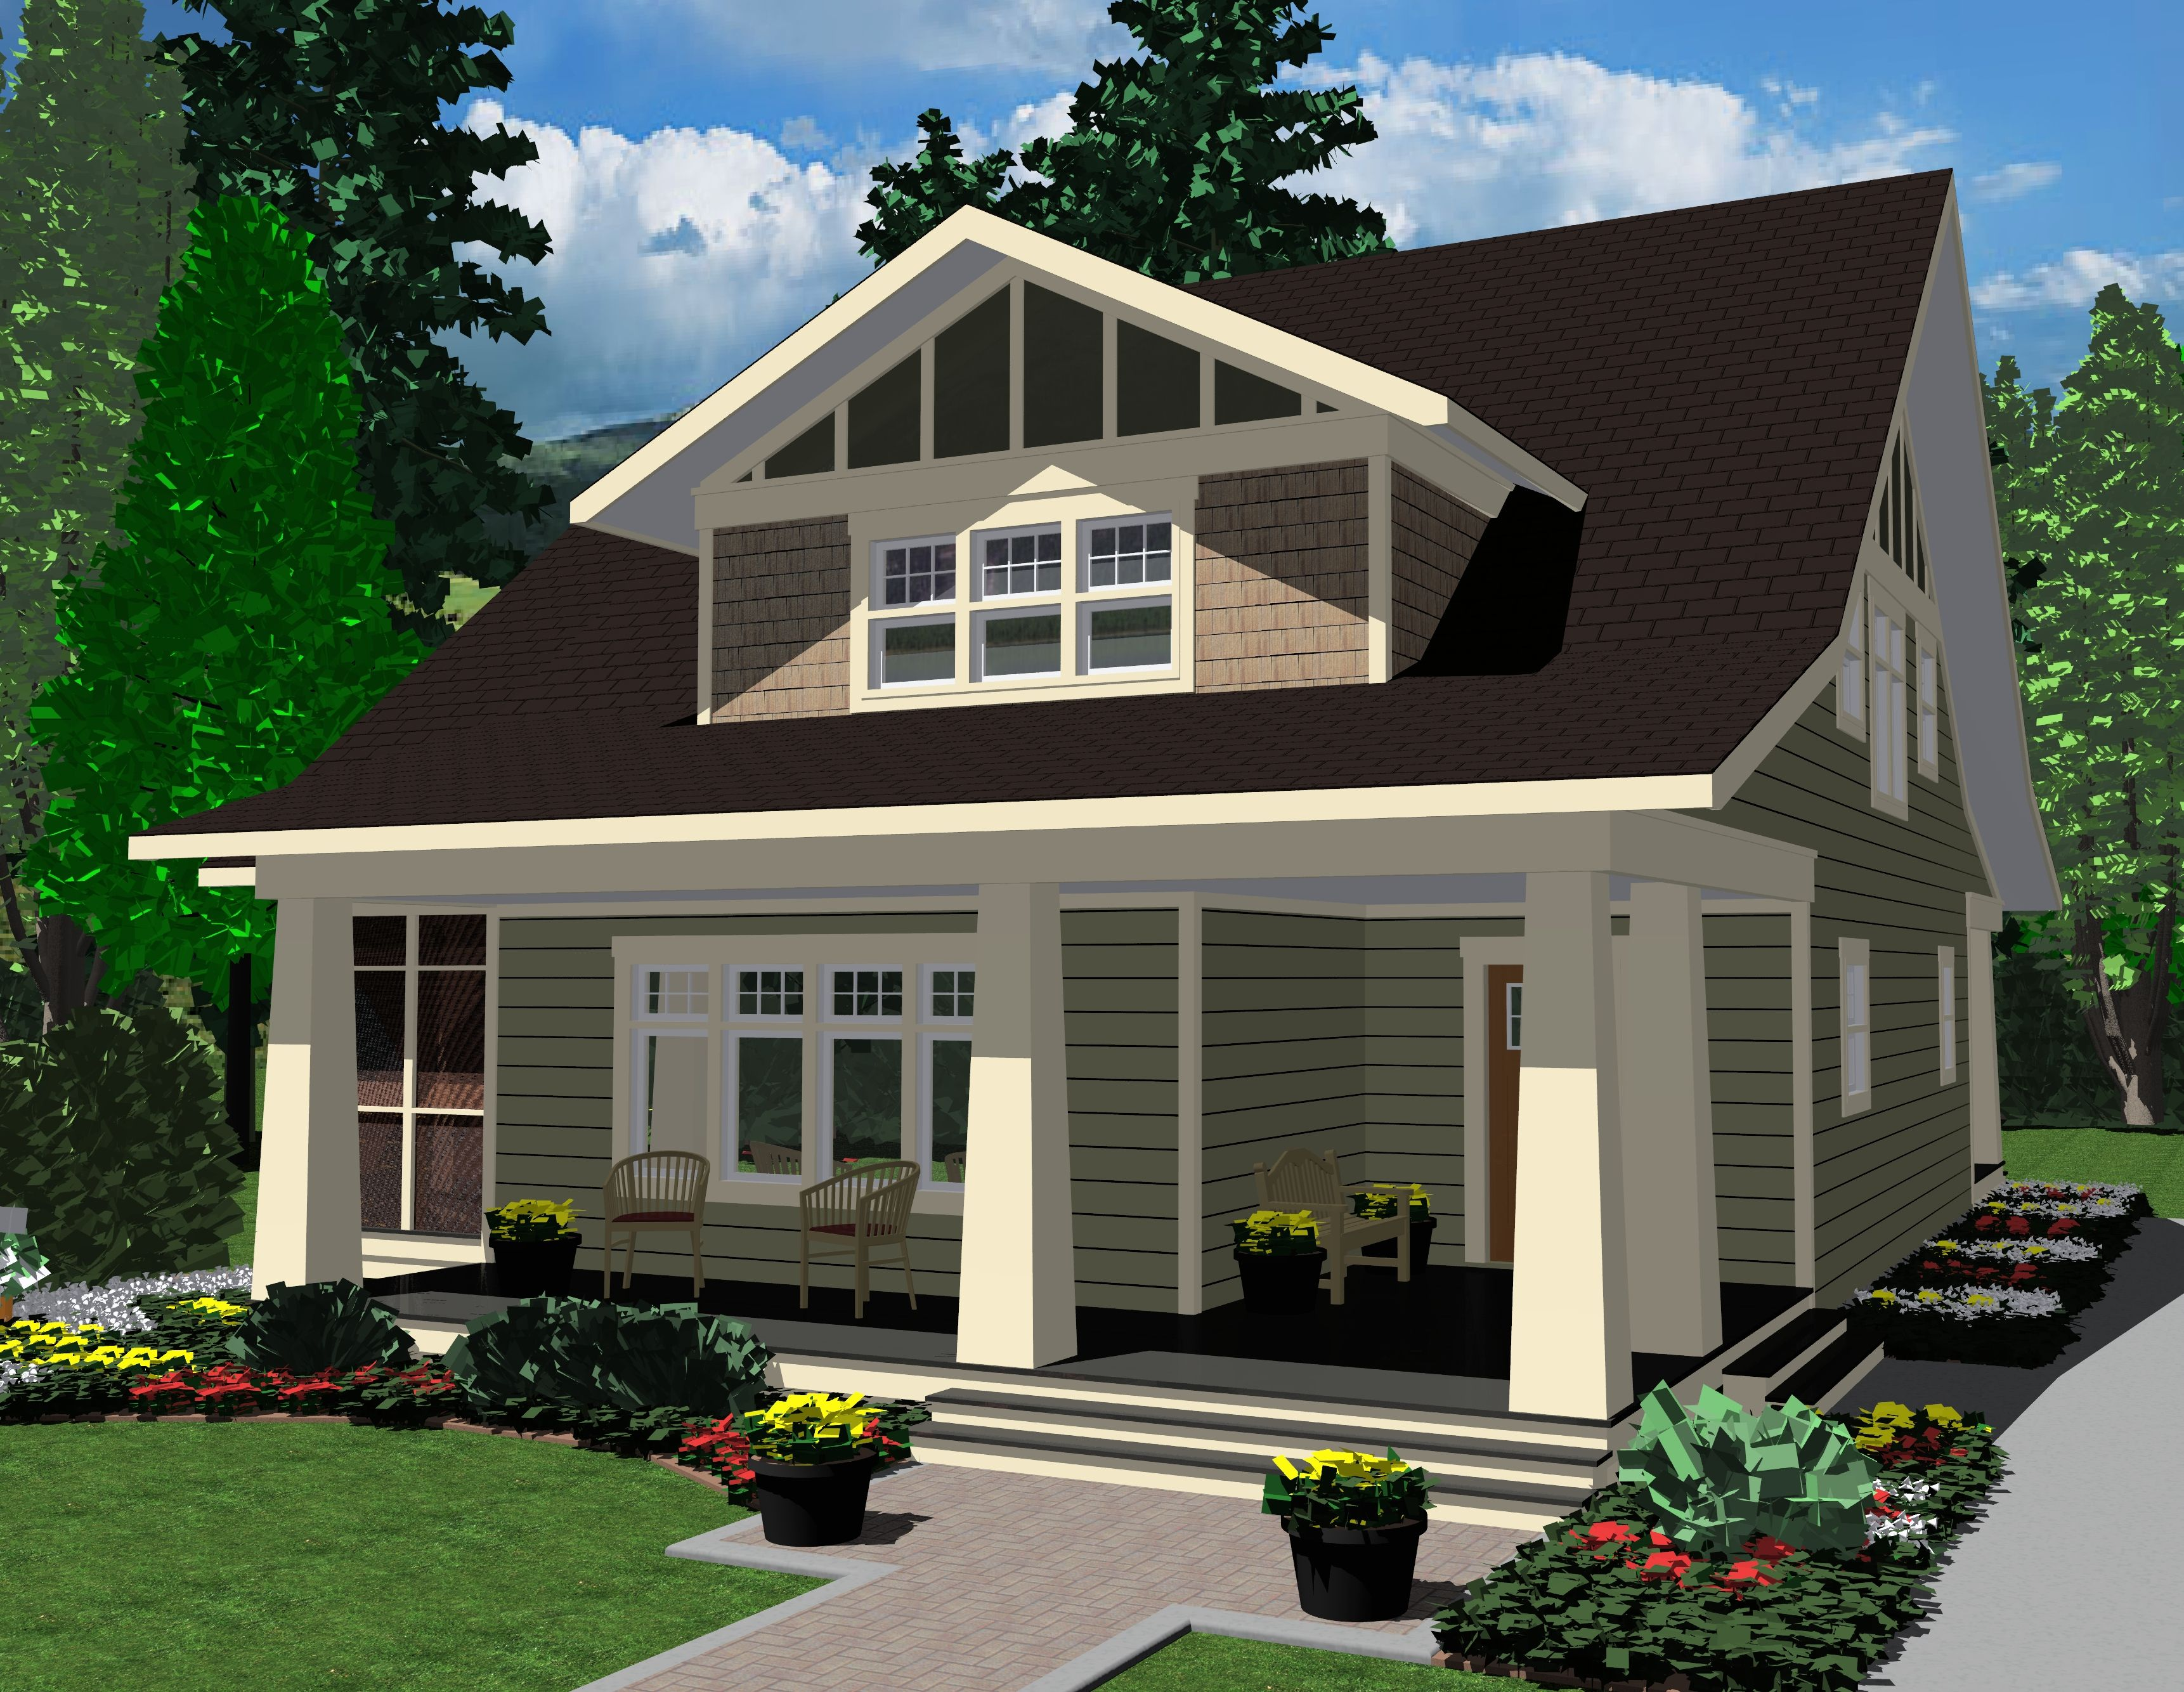 plan the house small ft plans sq floorplans queen lowes cottage quotsunsetquot for edwardian kits line cottages katrina floor homes